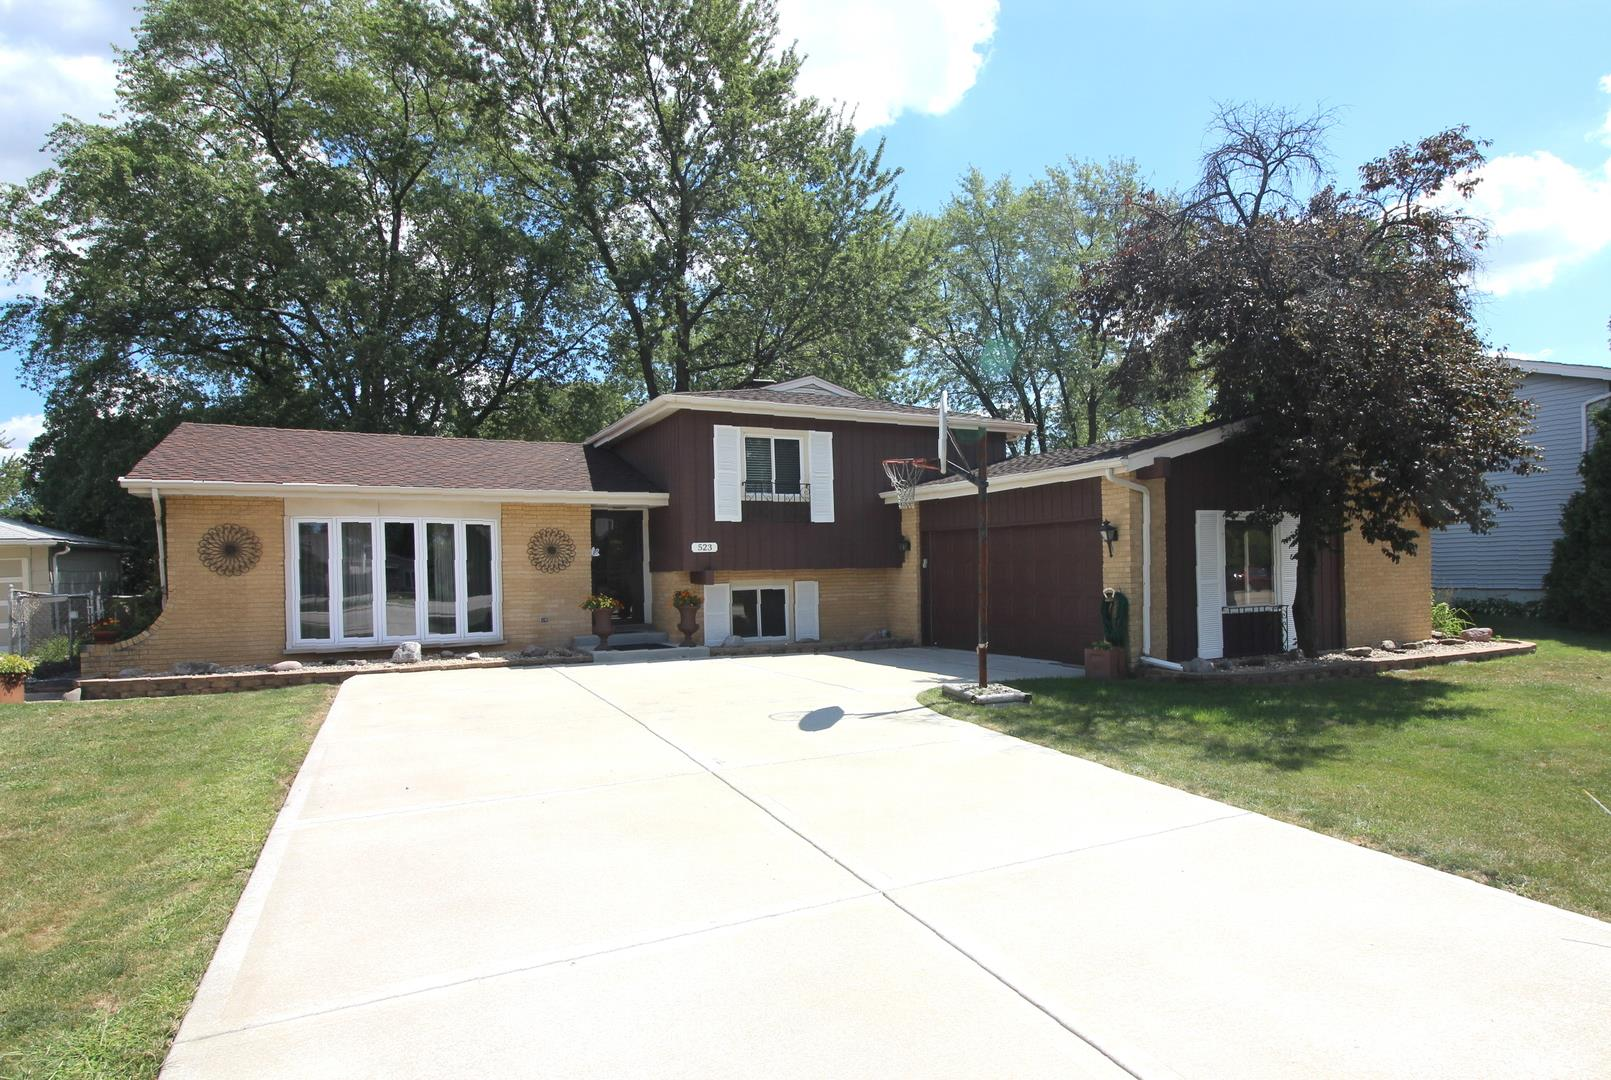 523 N Rohlwing Road, Addison, IL 60101 - #: 10841129